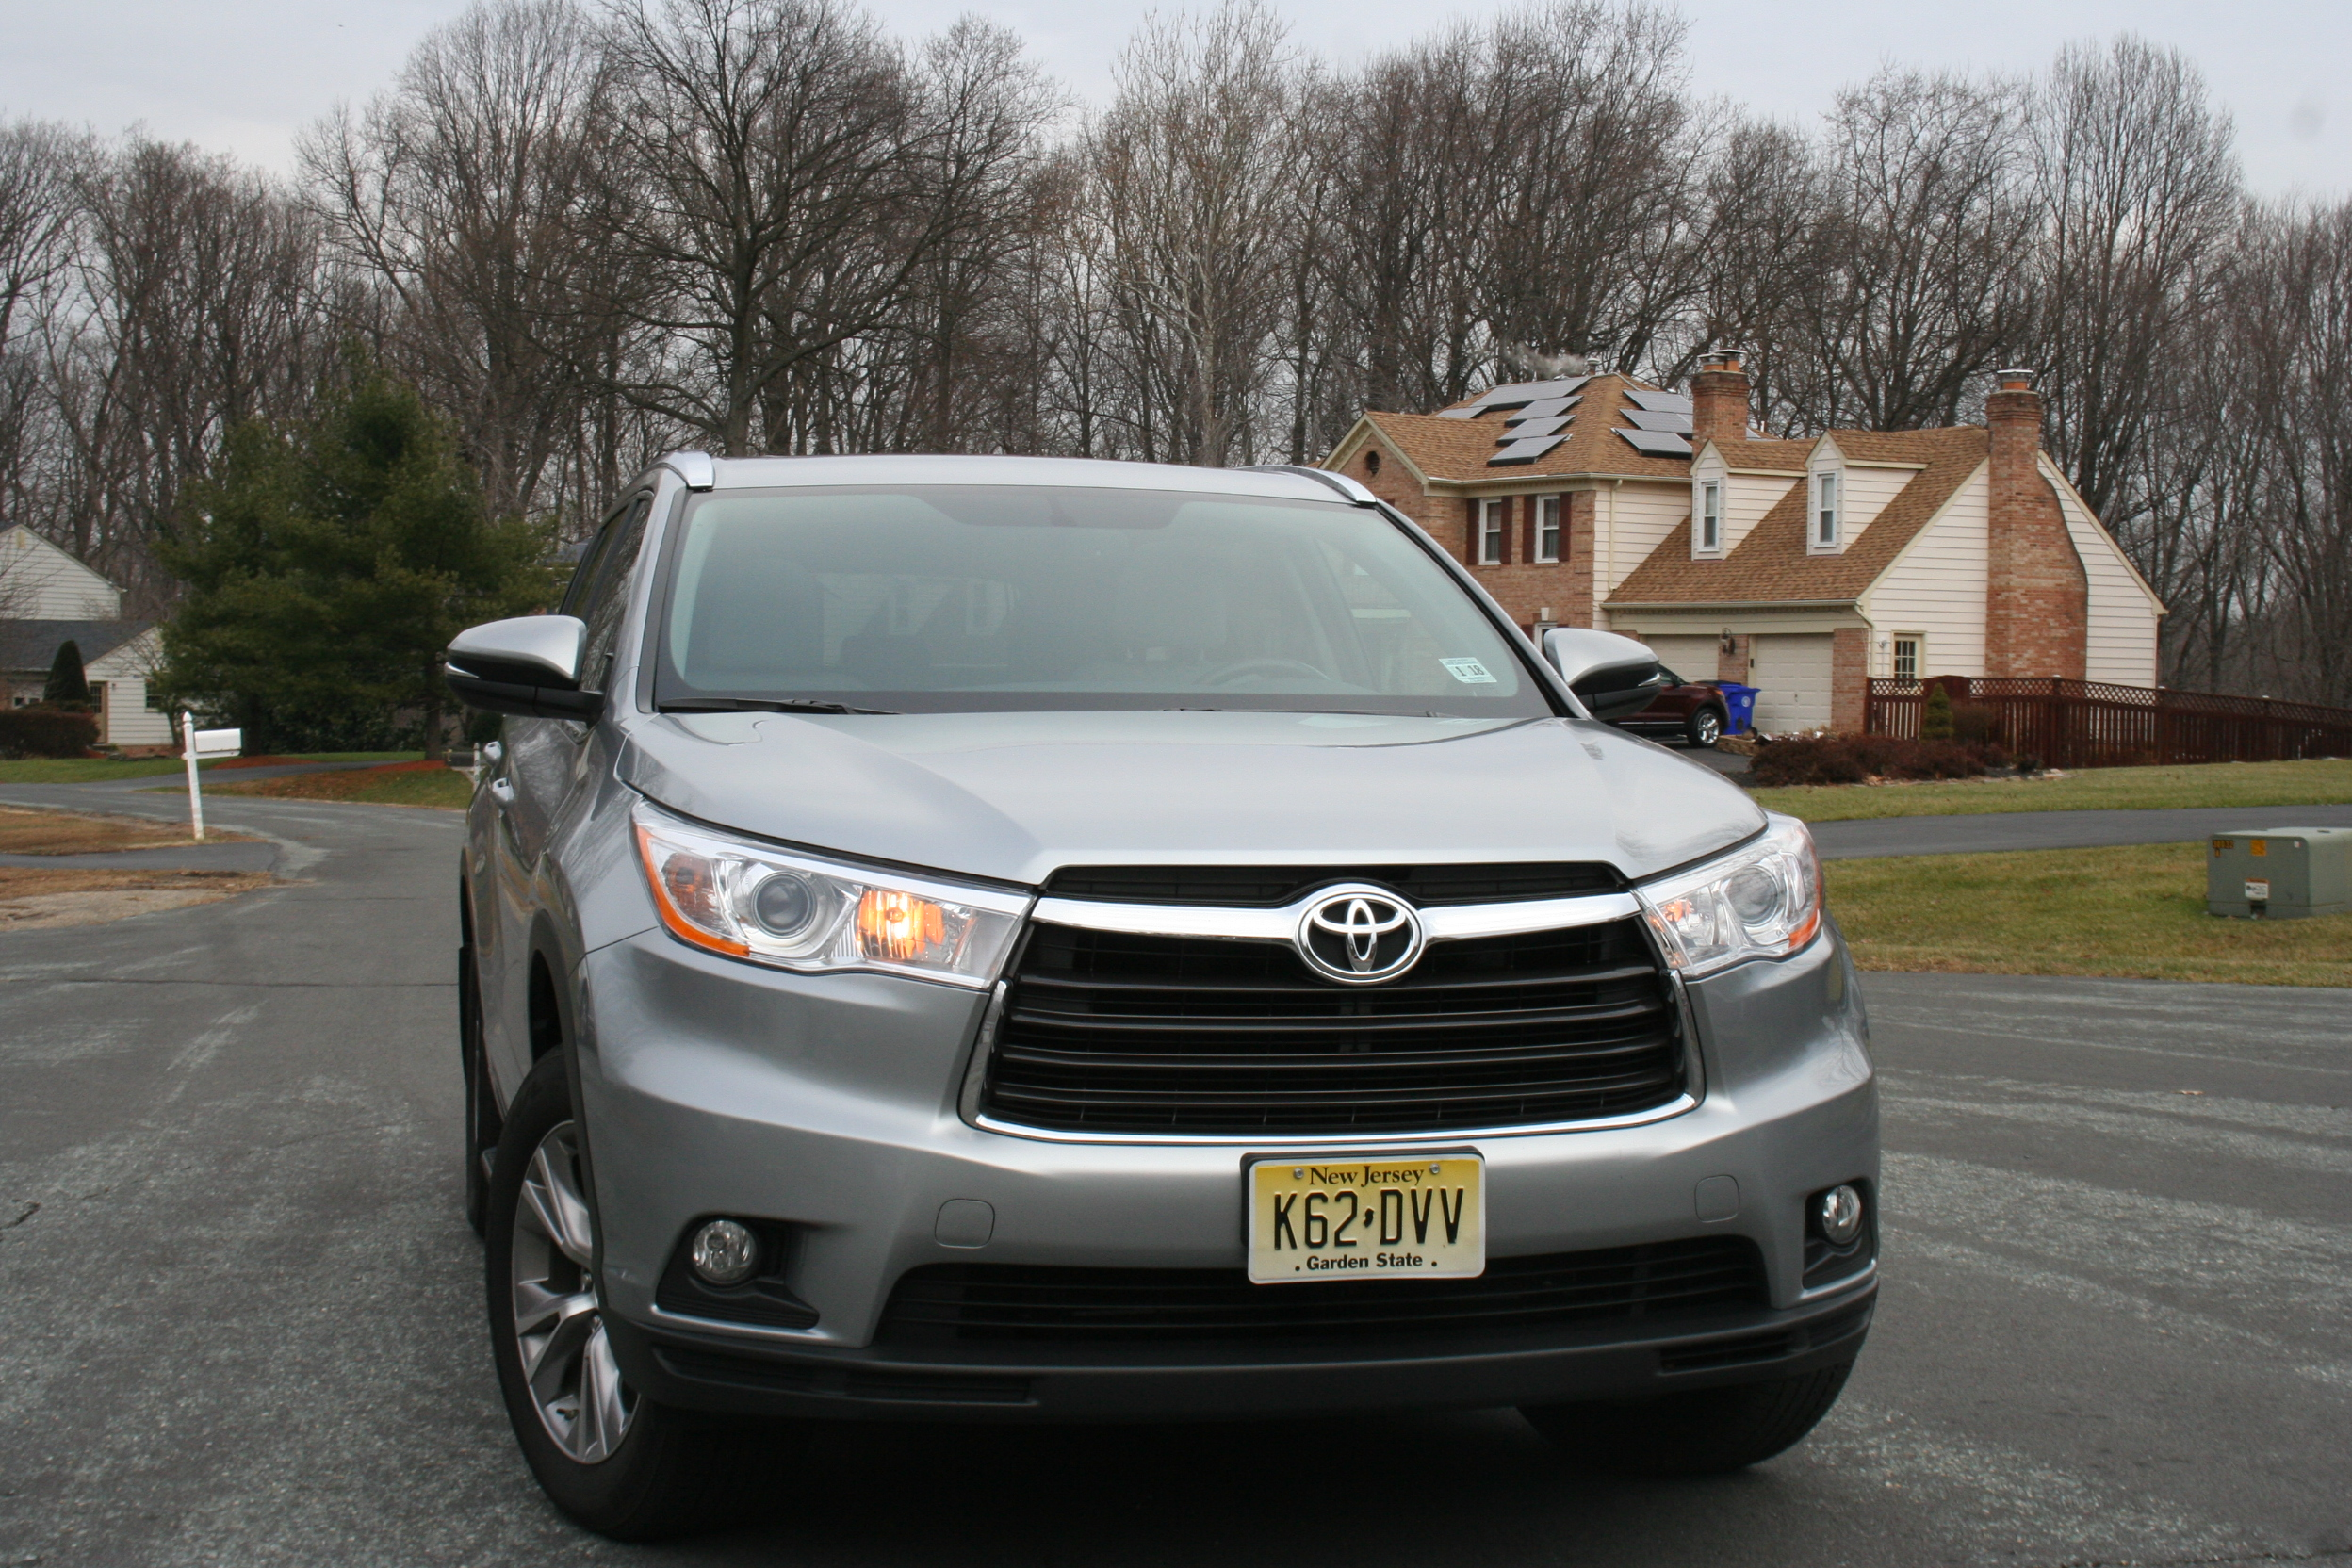 Car Report: Toyota Highlander at the head of midsize crossover class